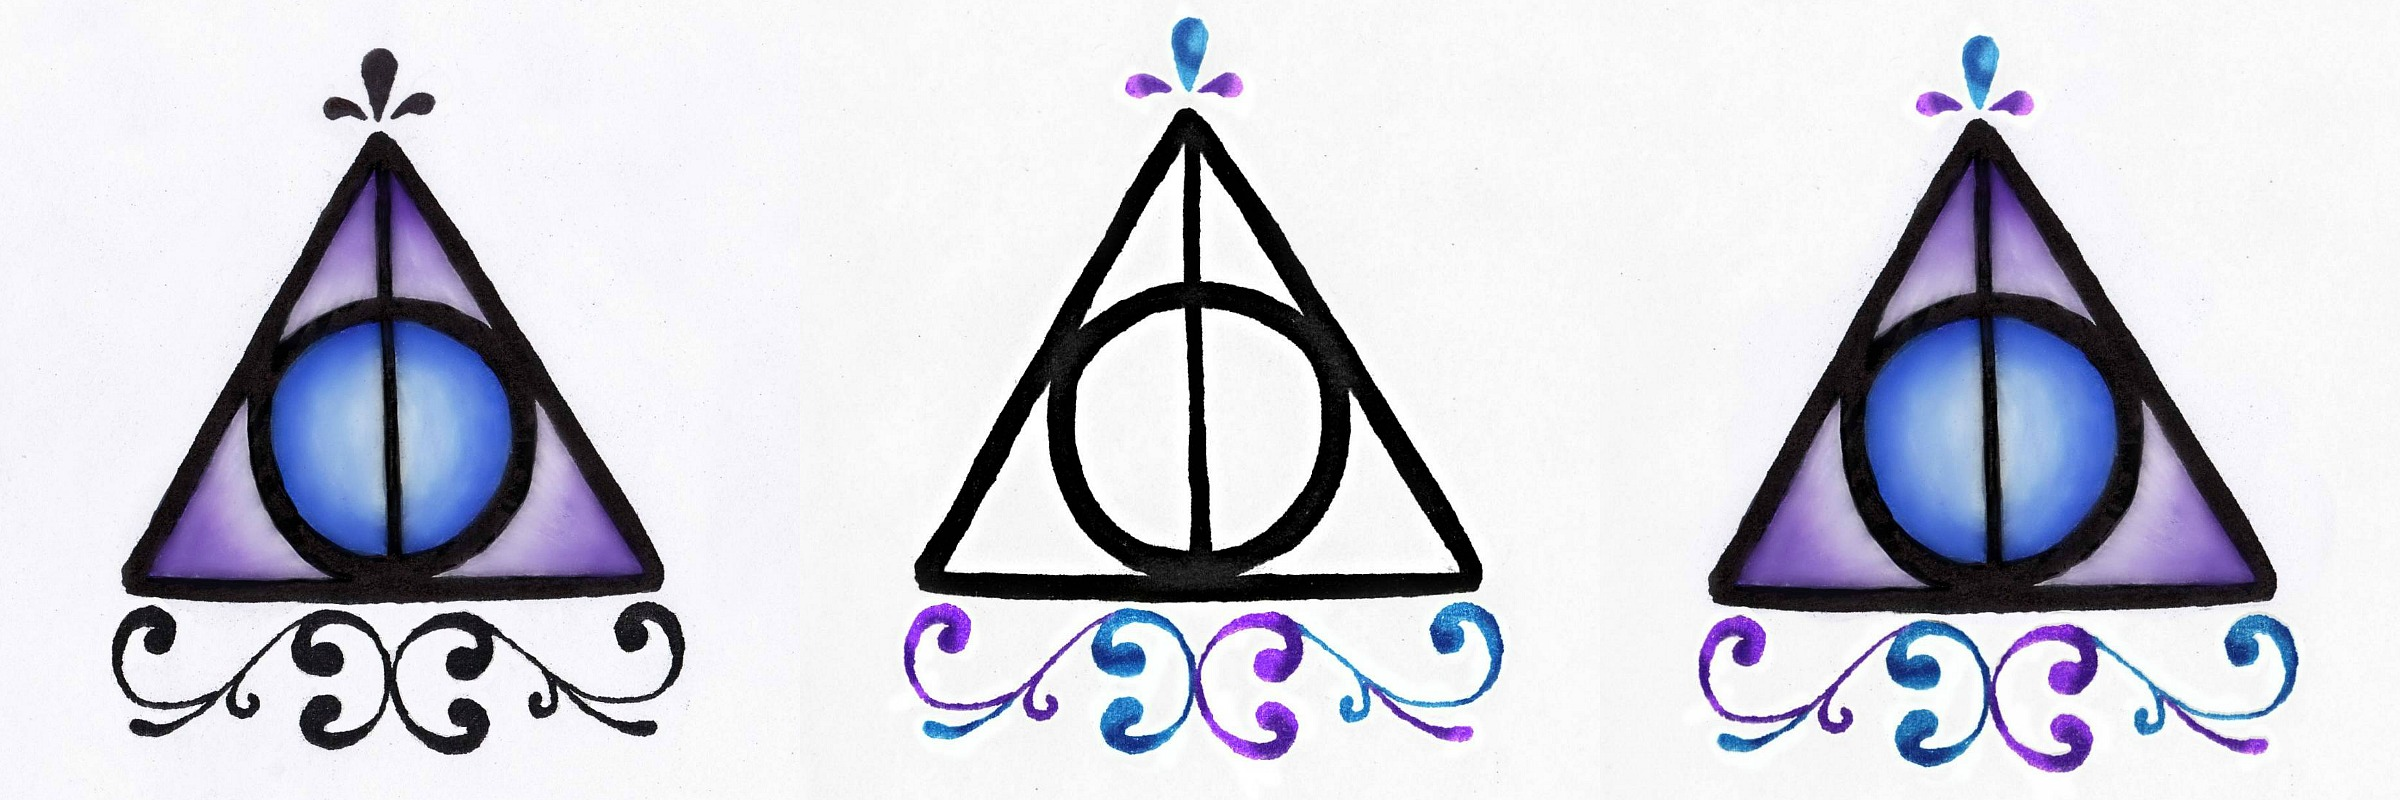 Deathly hallows tattoo designs by watergirl1996 on deviantart deathly hallows tattoo designs by watergirl1996 deathly hallows tattoo designs by watergirl1996 biocorpaavc